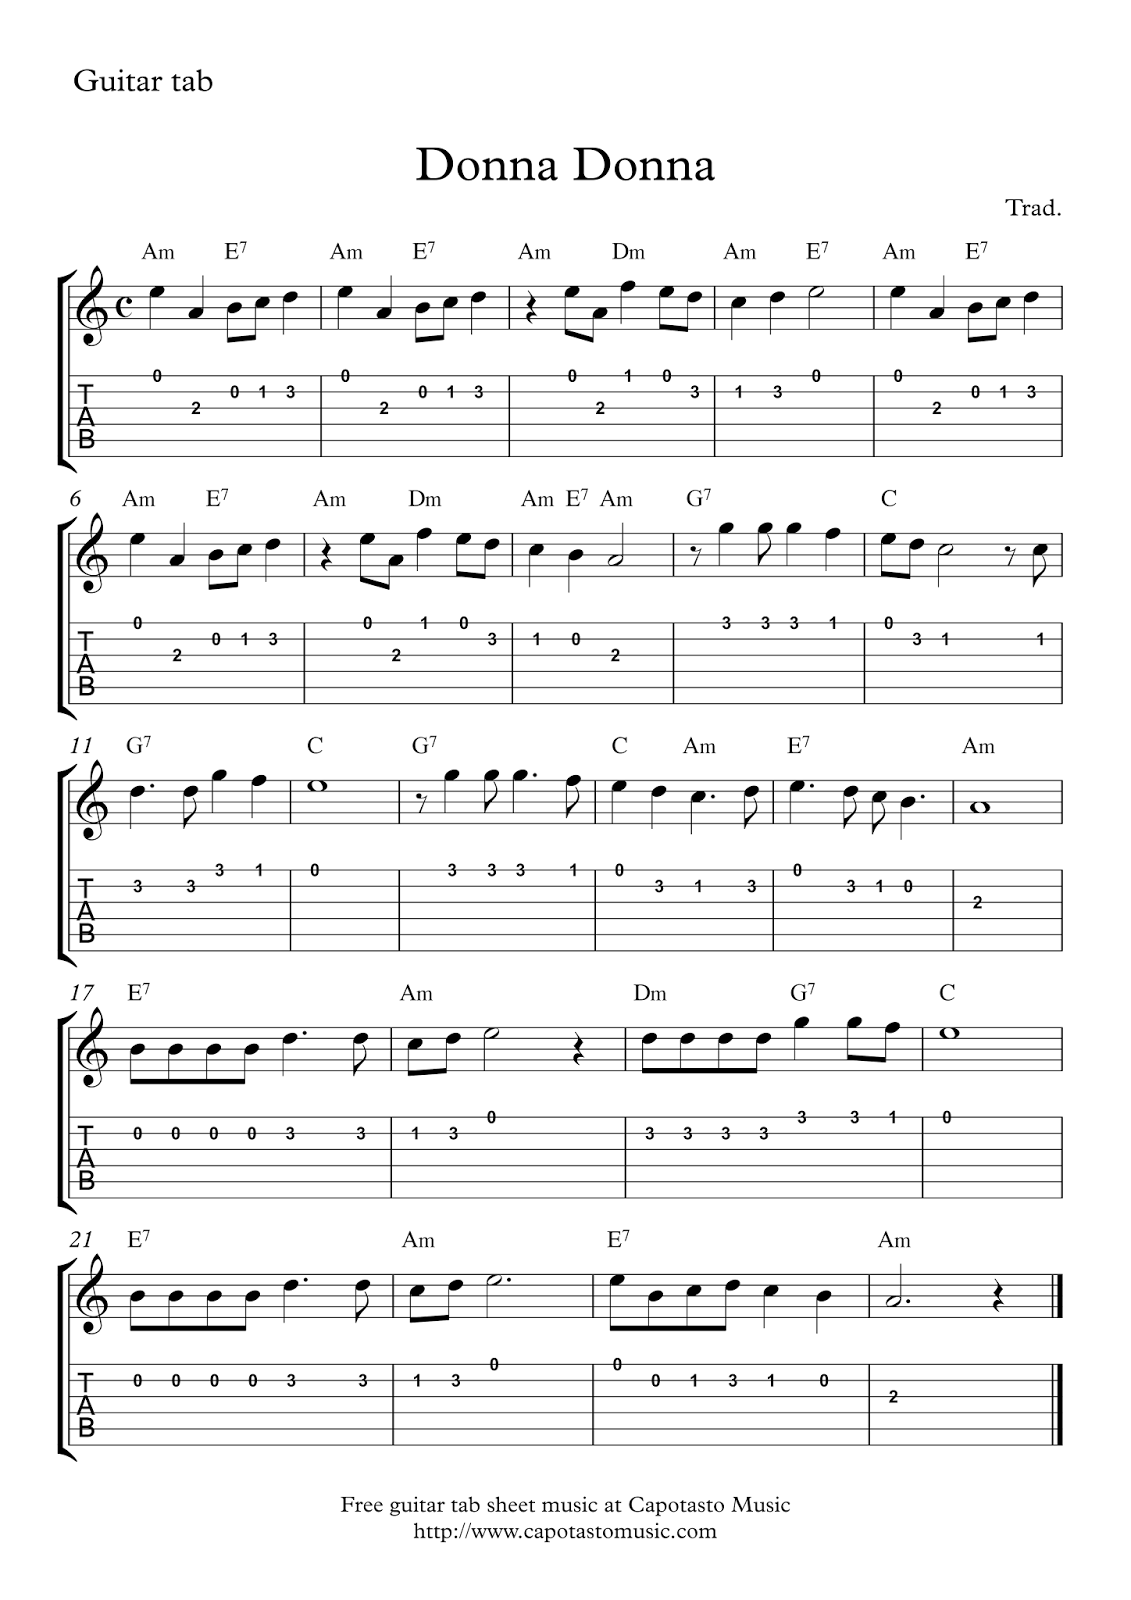 donna donna free guitar tab sheet music. Black Bedroom Furniture Sets. Home Design Ideas